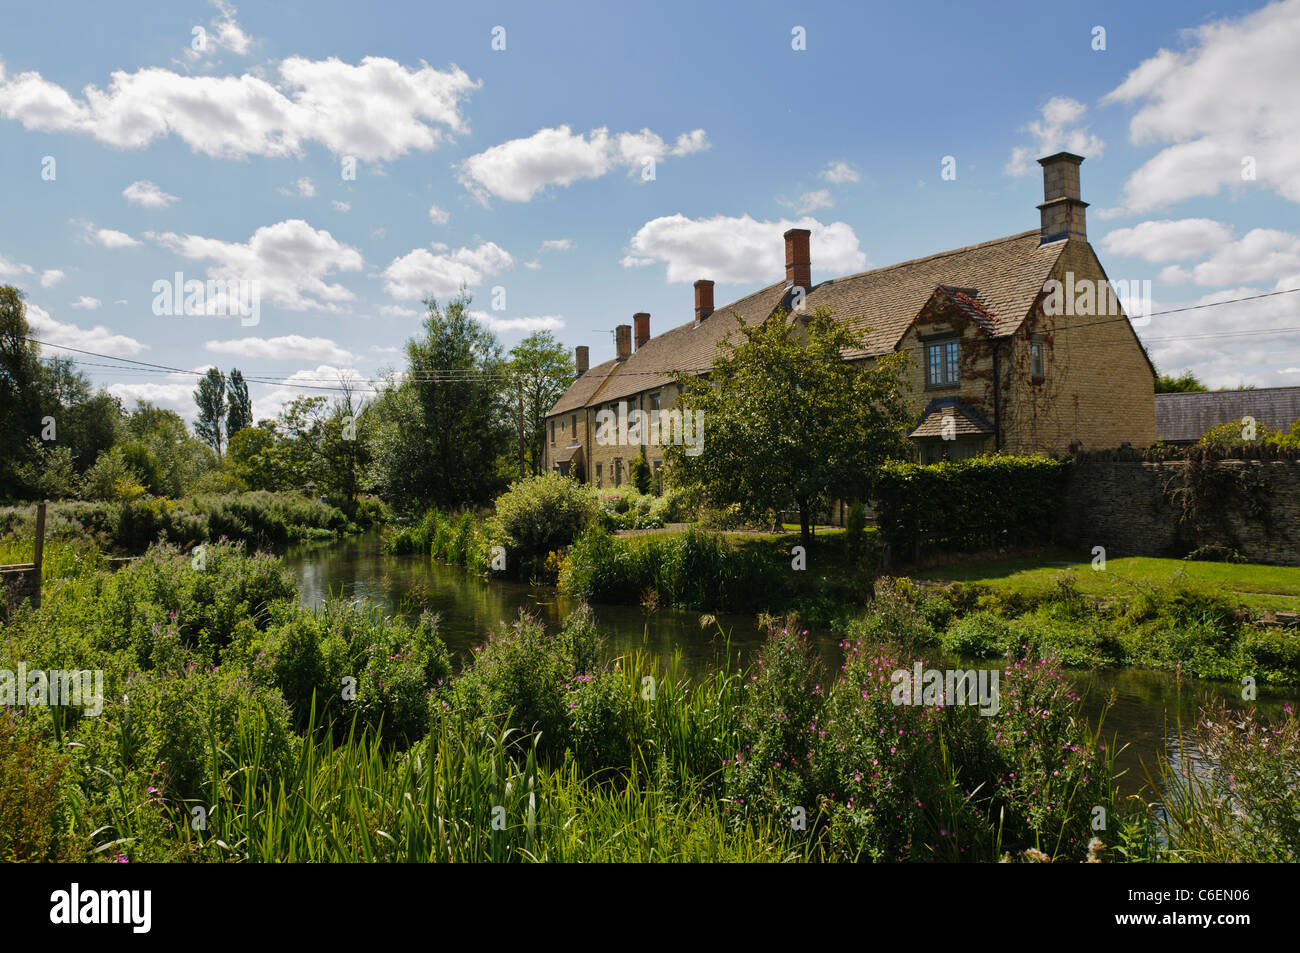 Houses beside the River Coln in the Gloucestershire village of Fairford - Stock Image